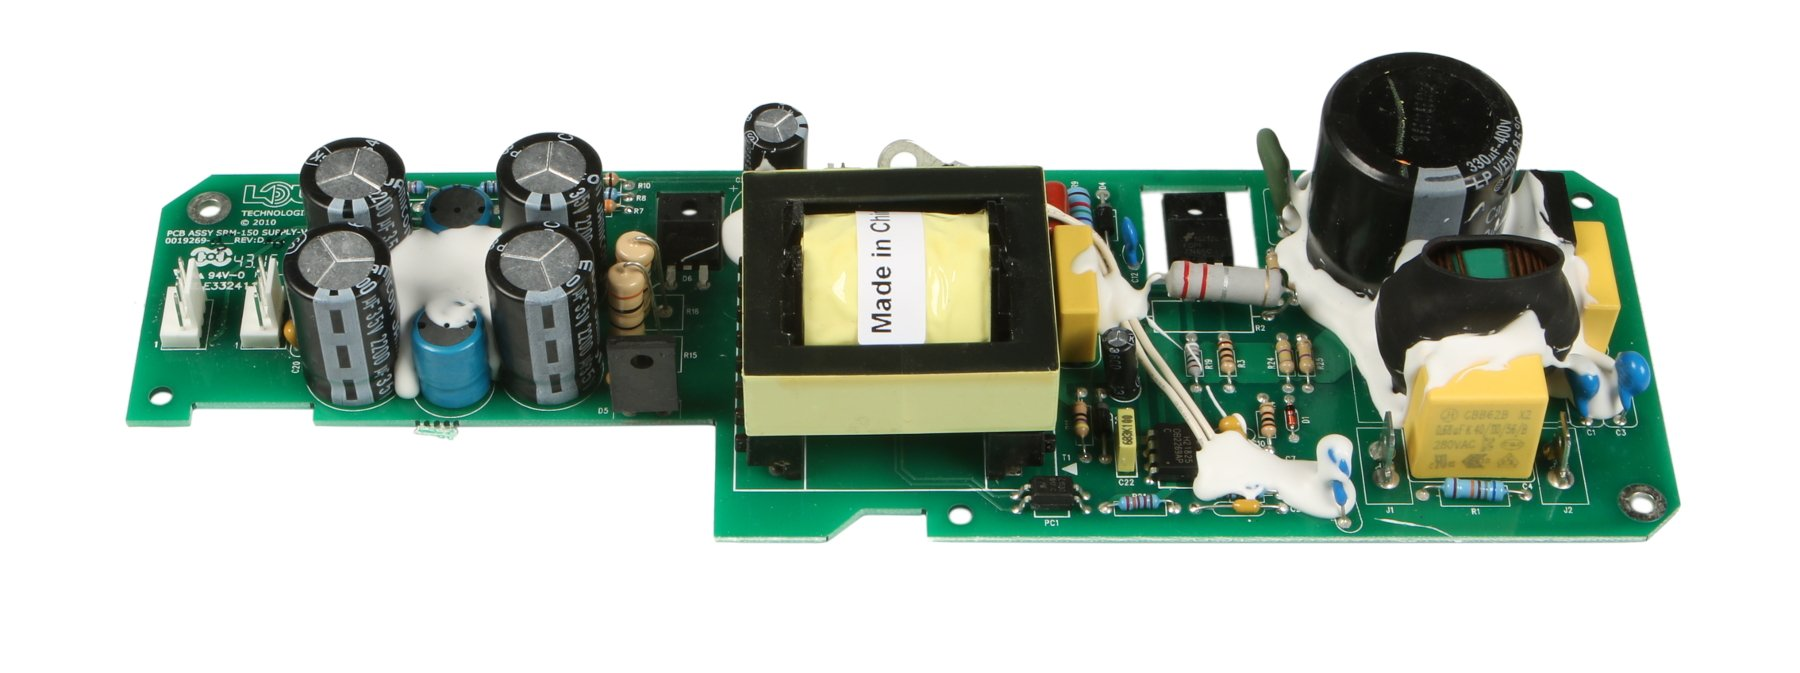 Power Supply PCB for SRM150 and SRM150v2